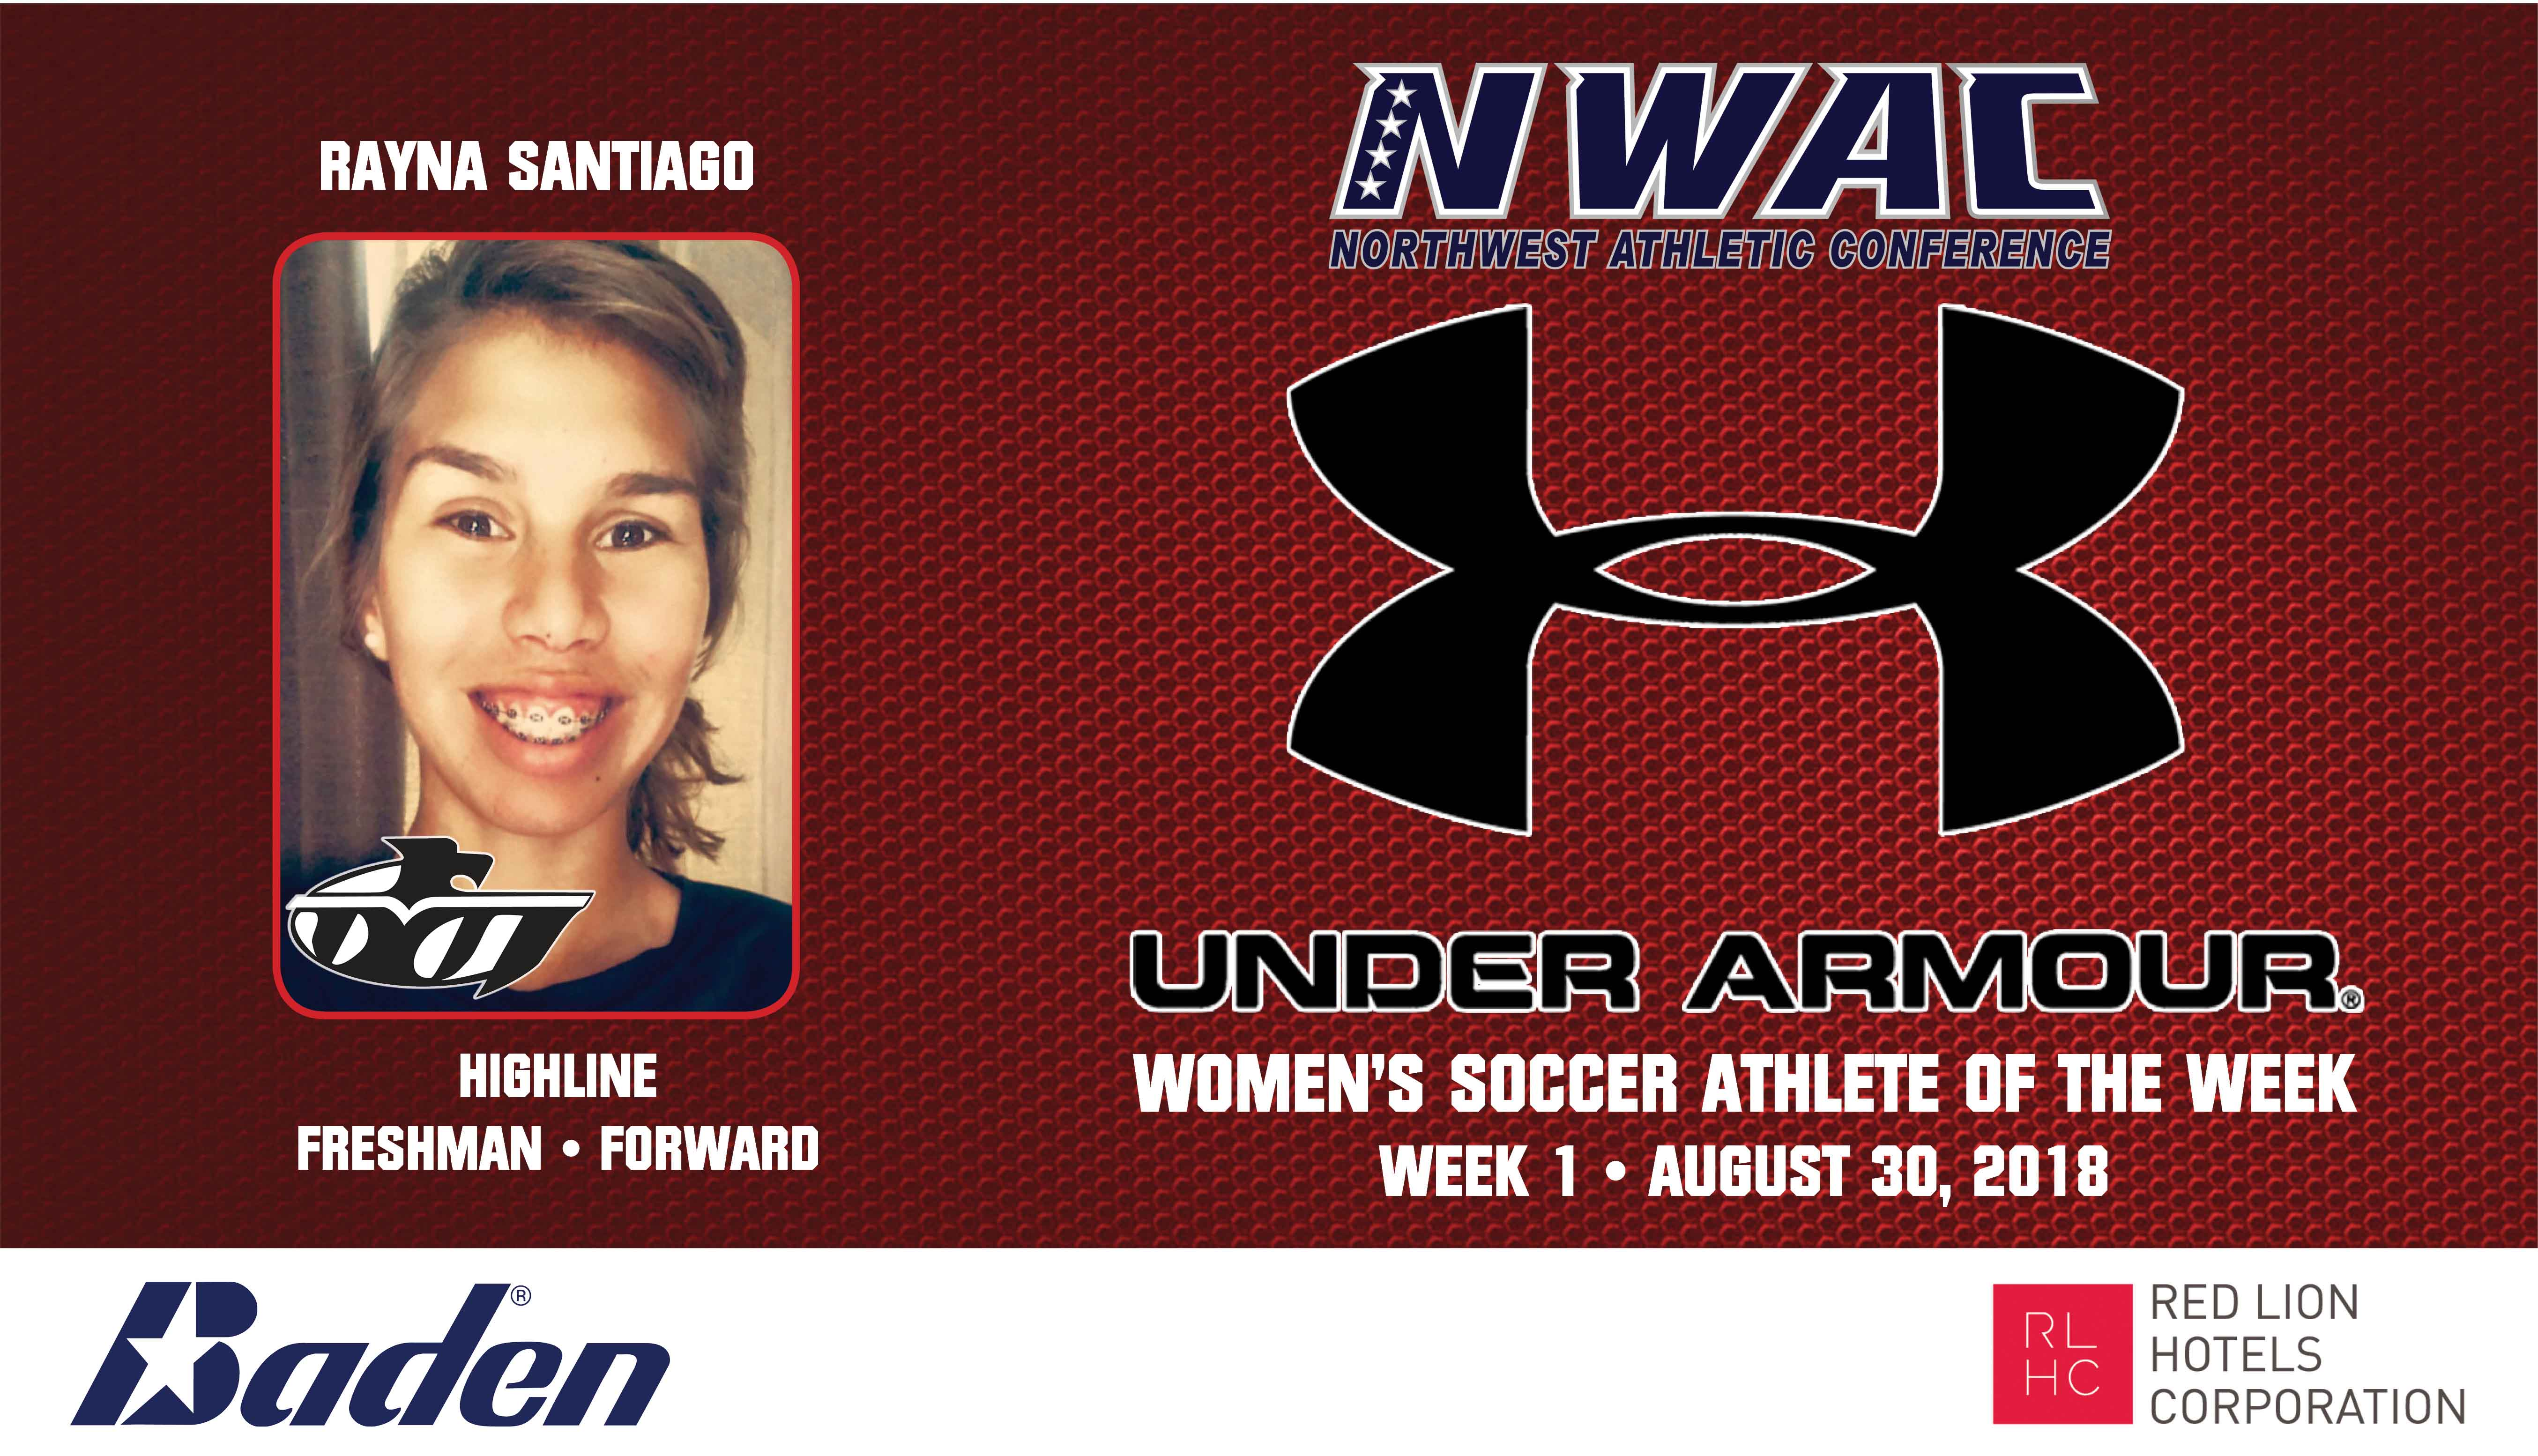 Rayna Santiago Armour Player of the Week graphic